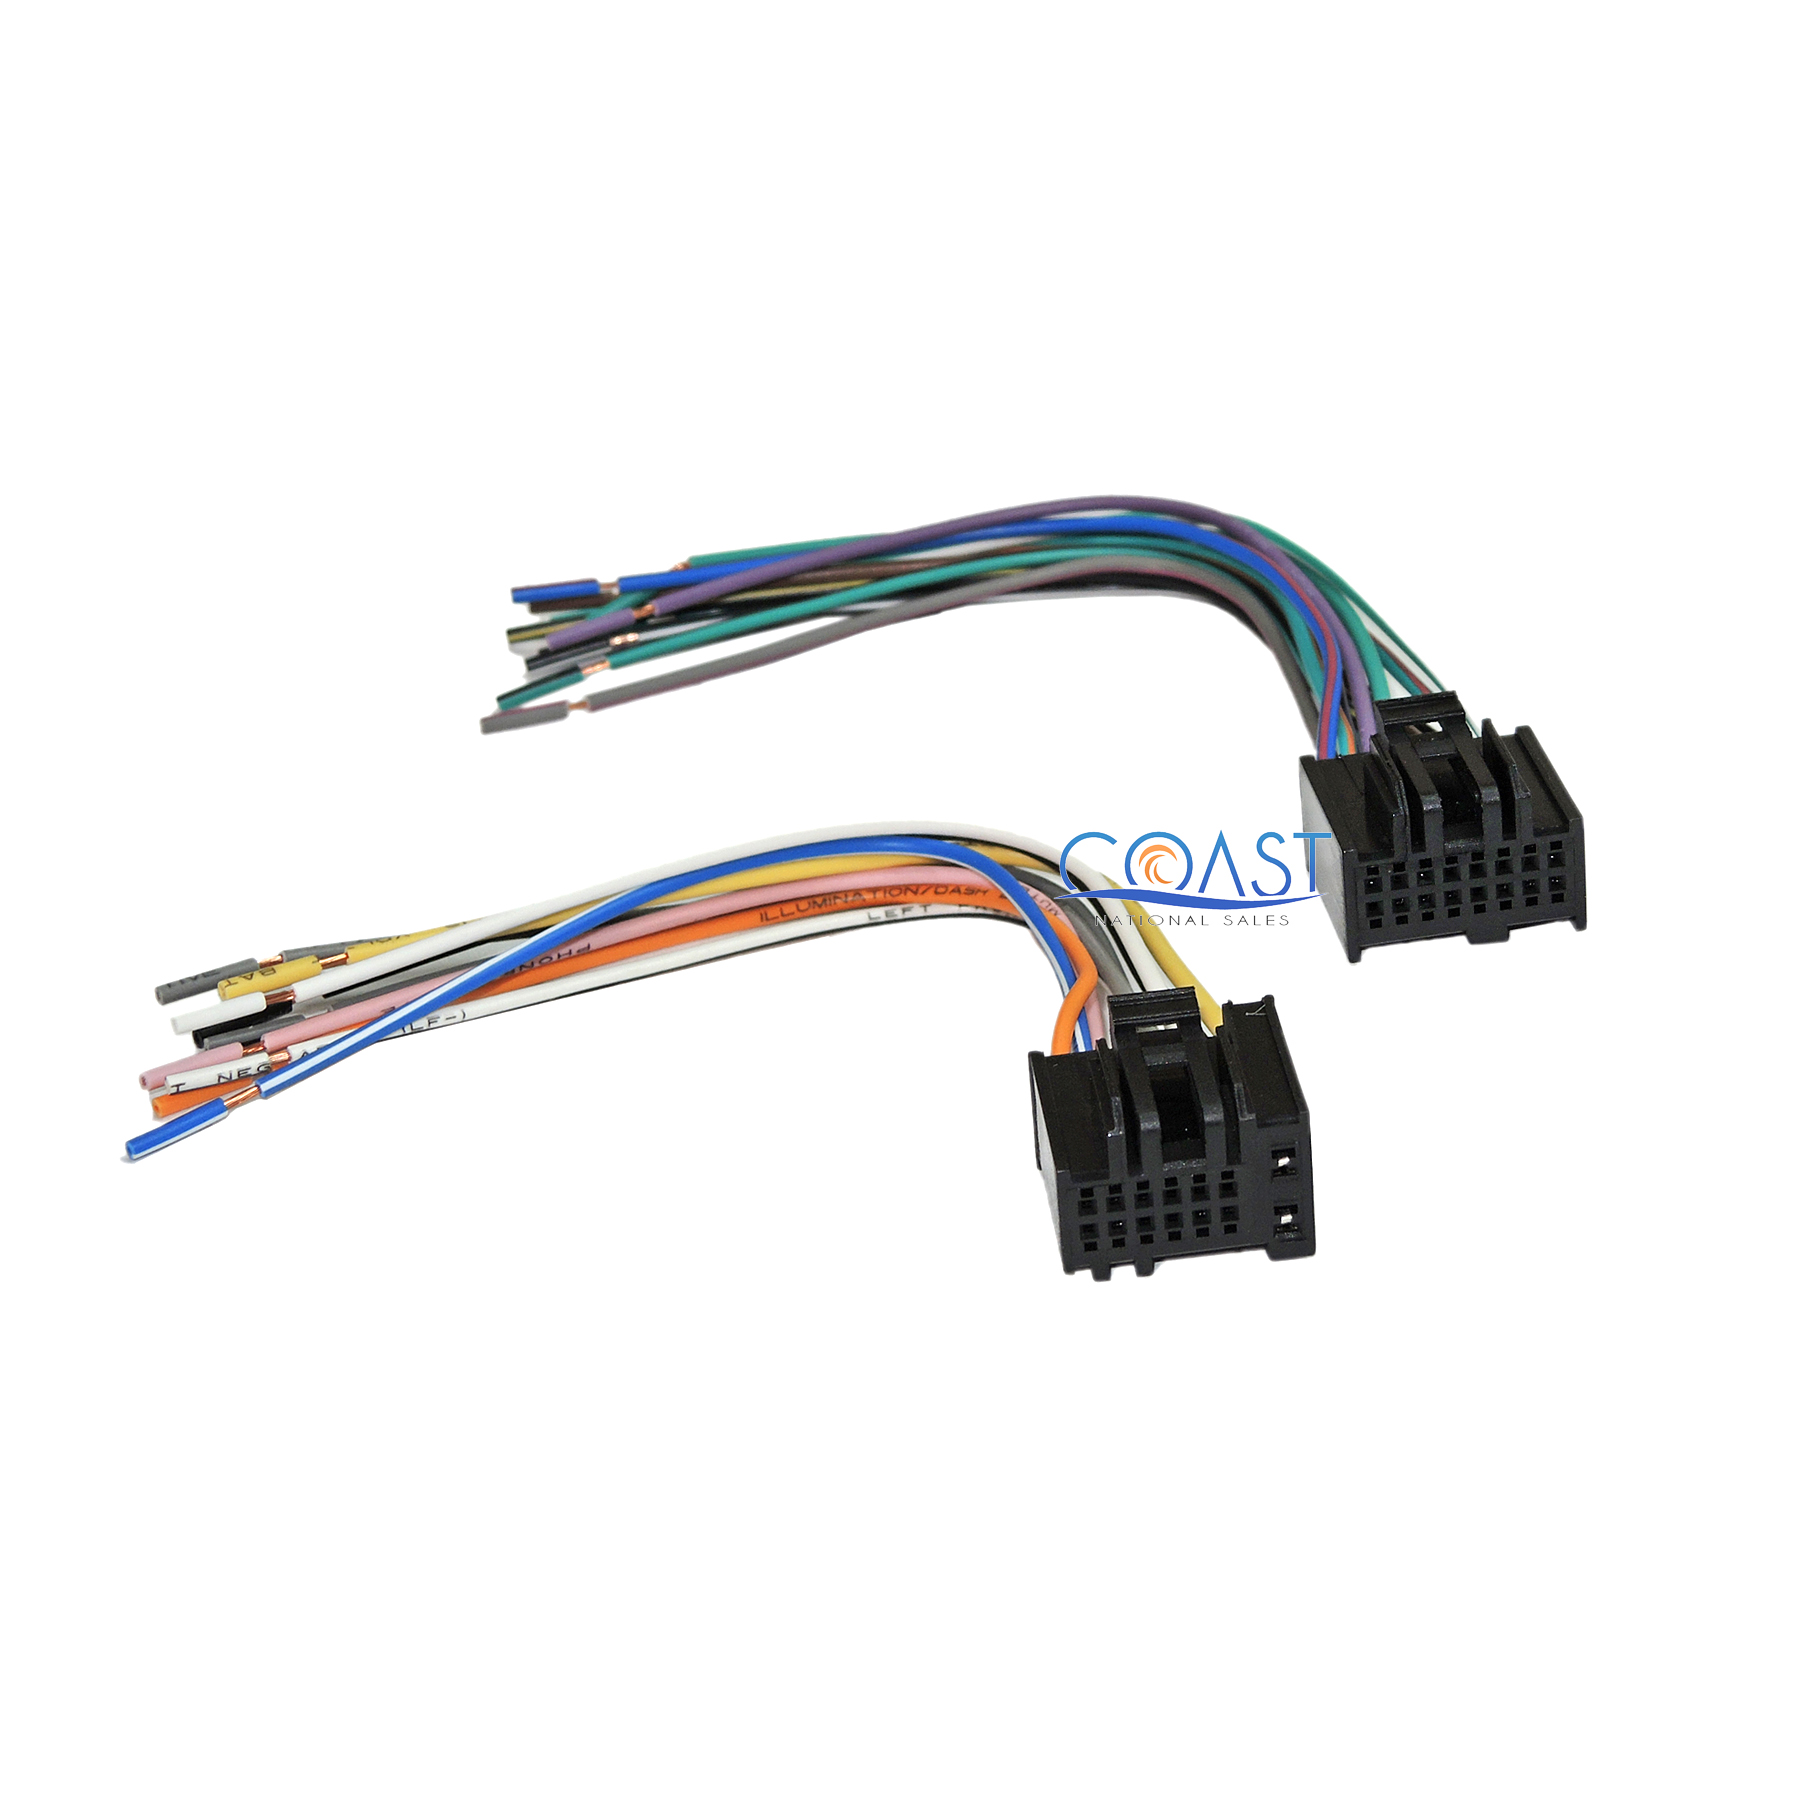 Chevy Silverado Radio Wiring Harness On 2005 Chevy Silverado Truck